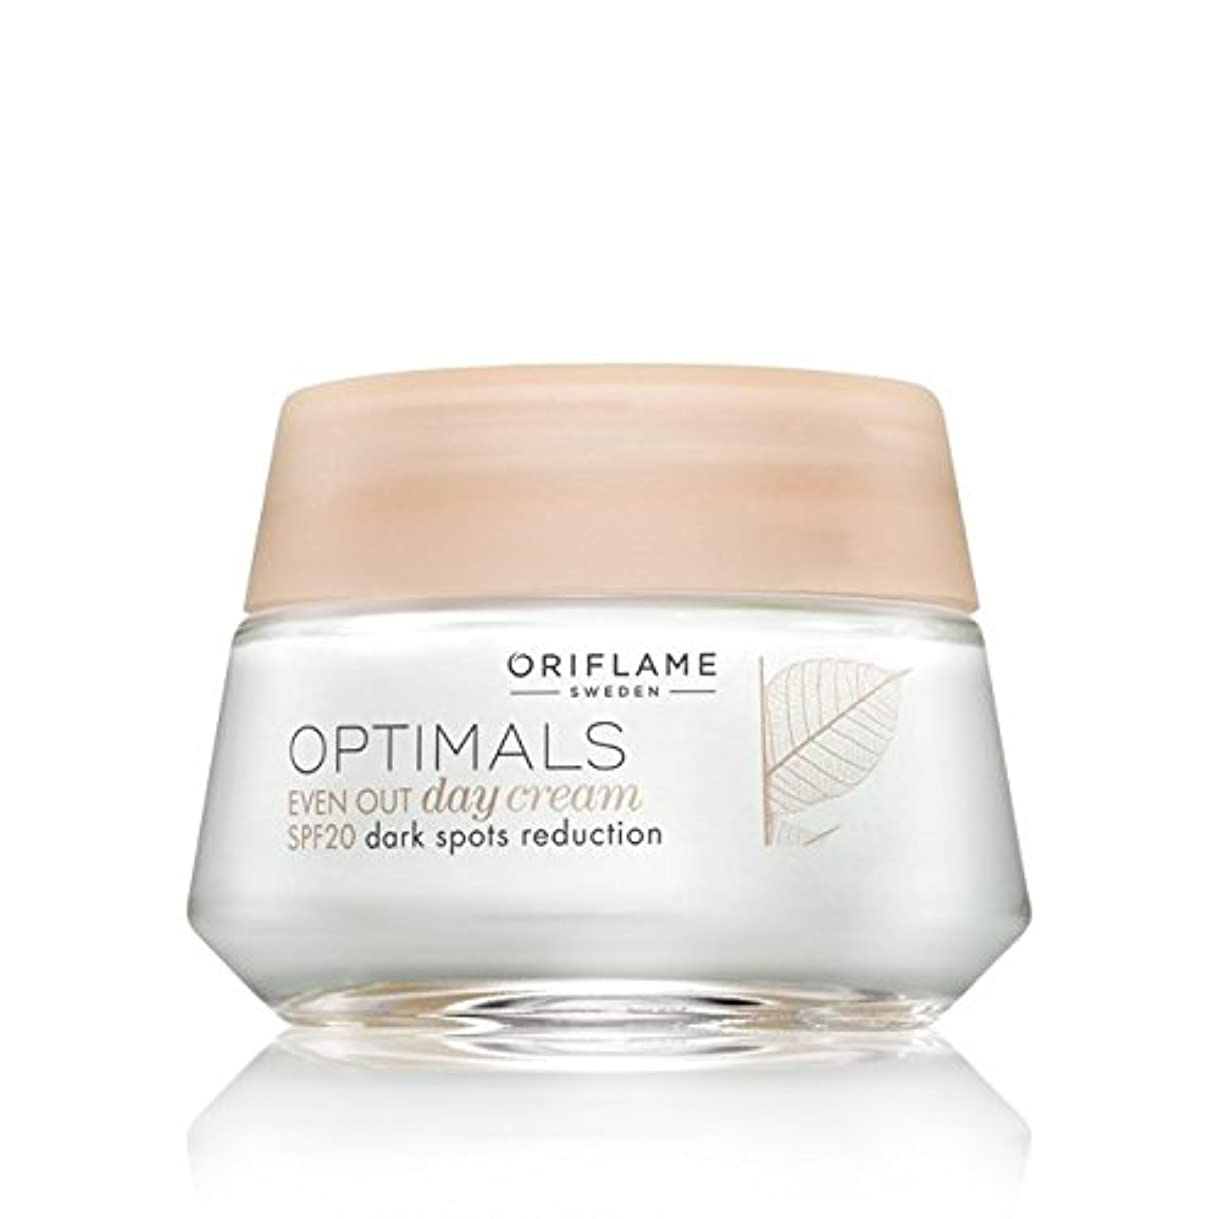 四半期モニター少なくともOriflame Optimals SPF 20 Dark Spot Reduction Even Out Day Cream, 50ml